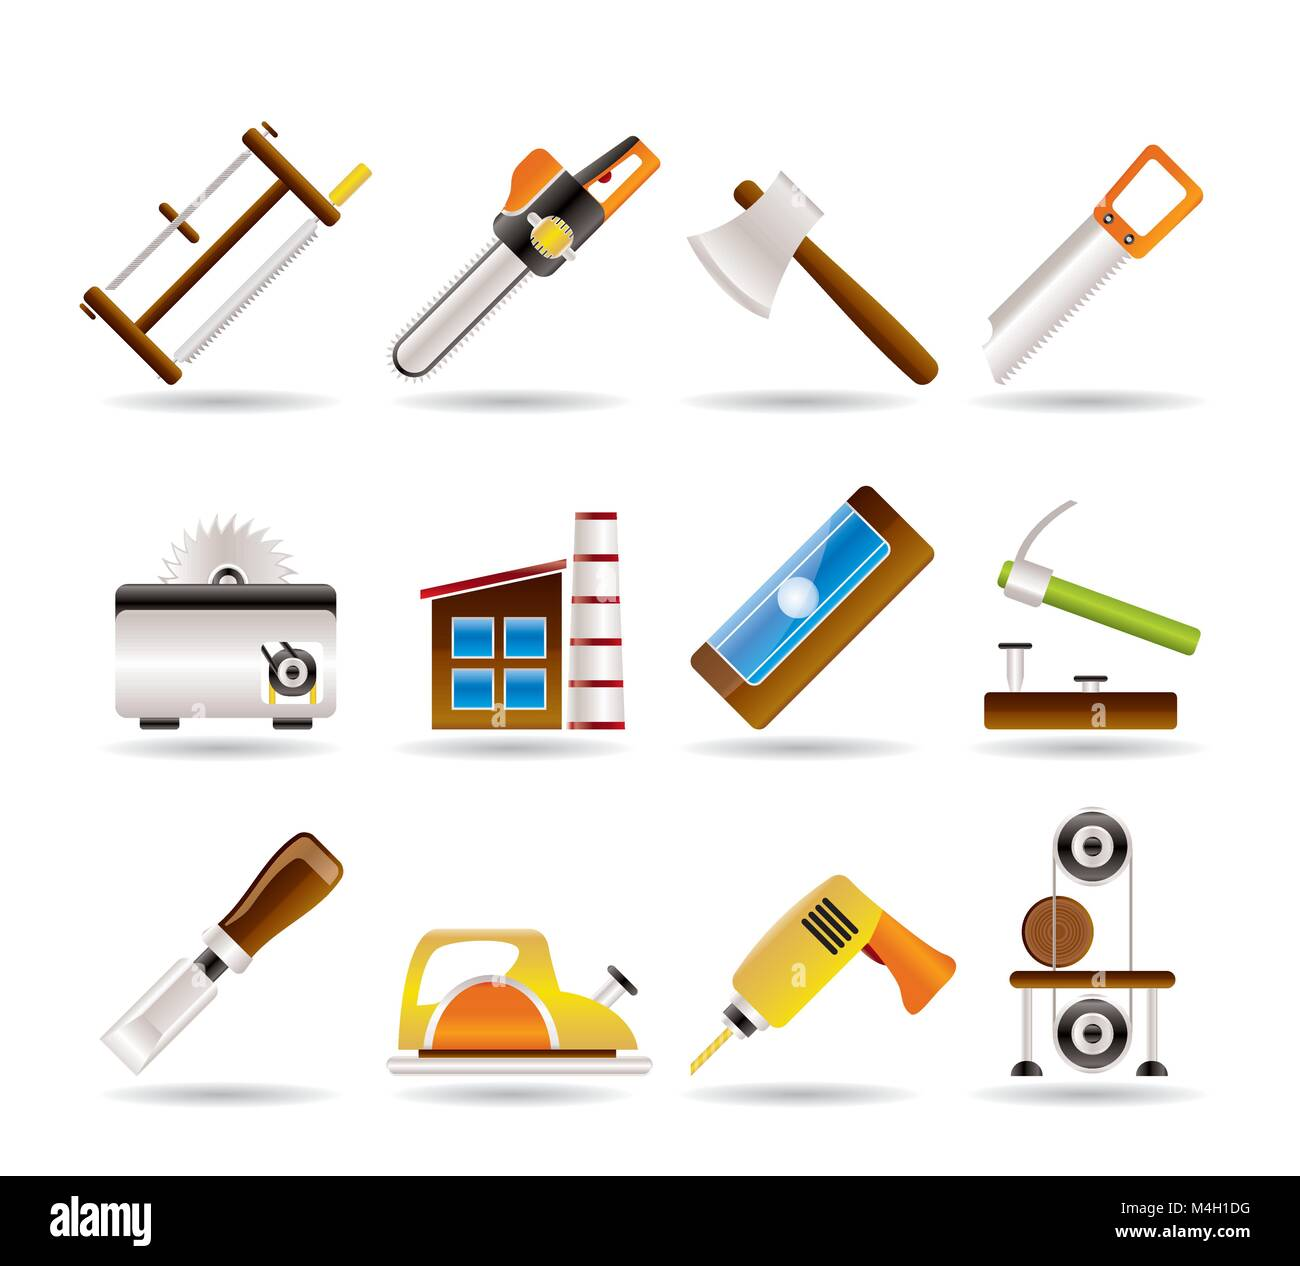 Woodworking Industry And Woodworking Tools Icons Vector Icon Set